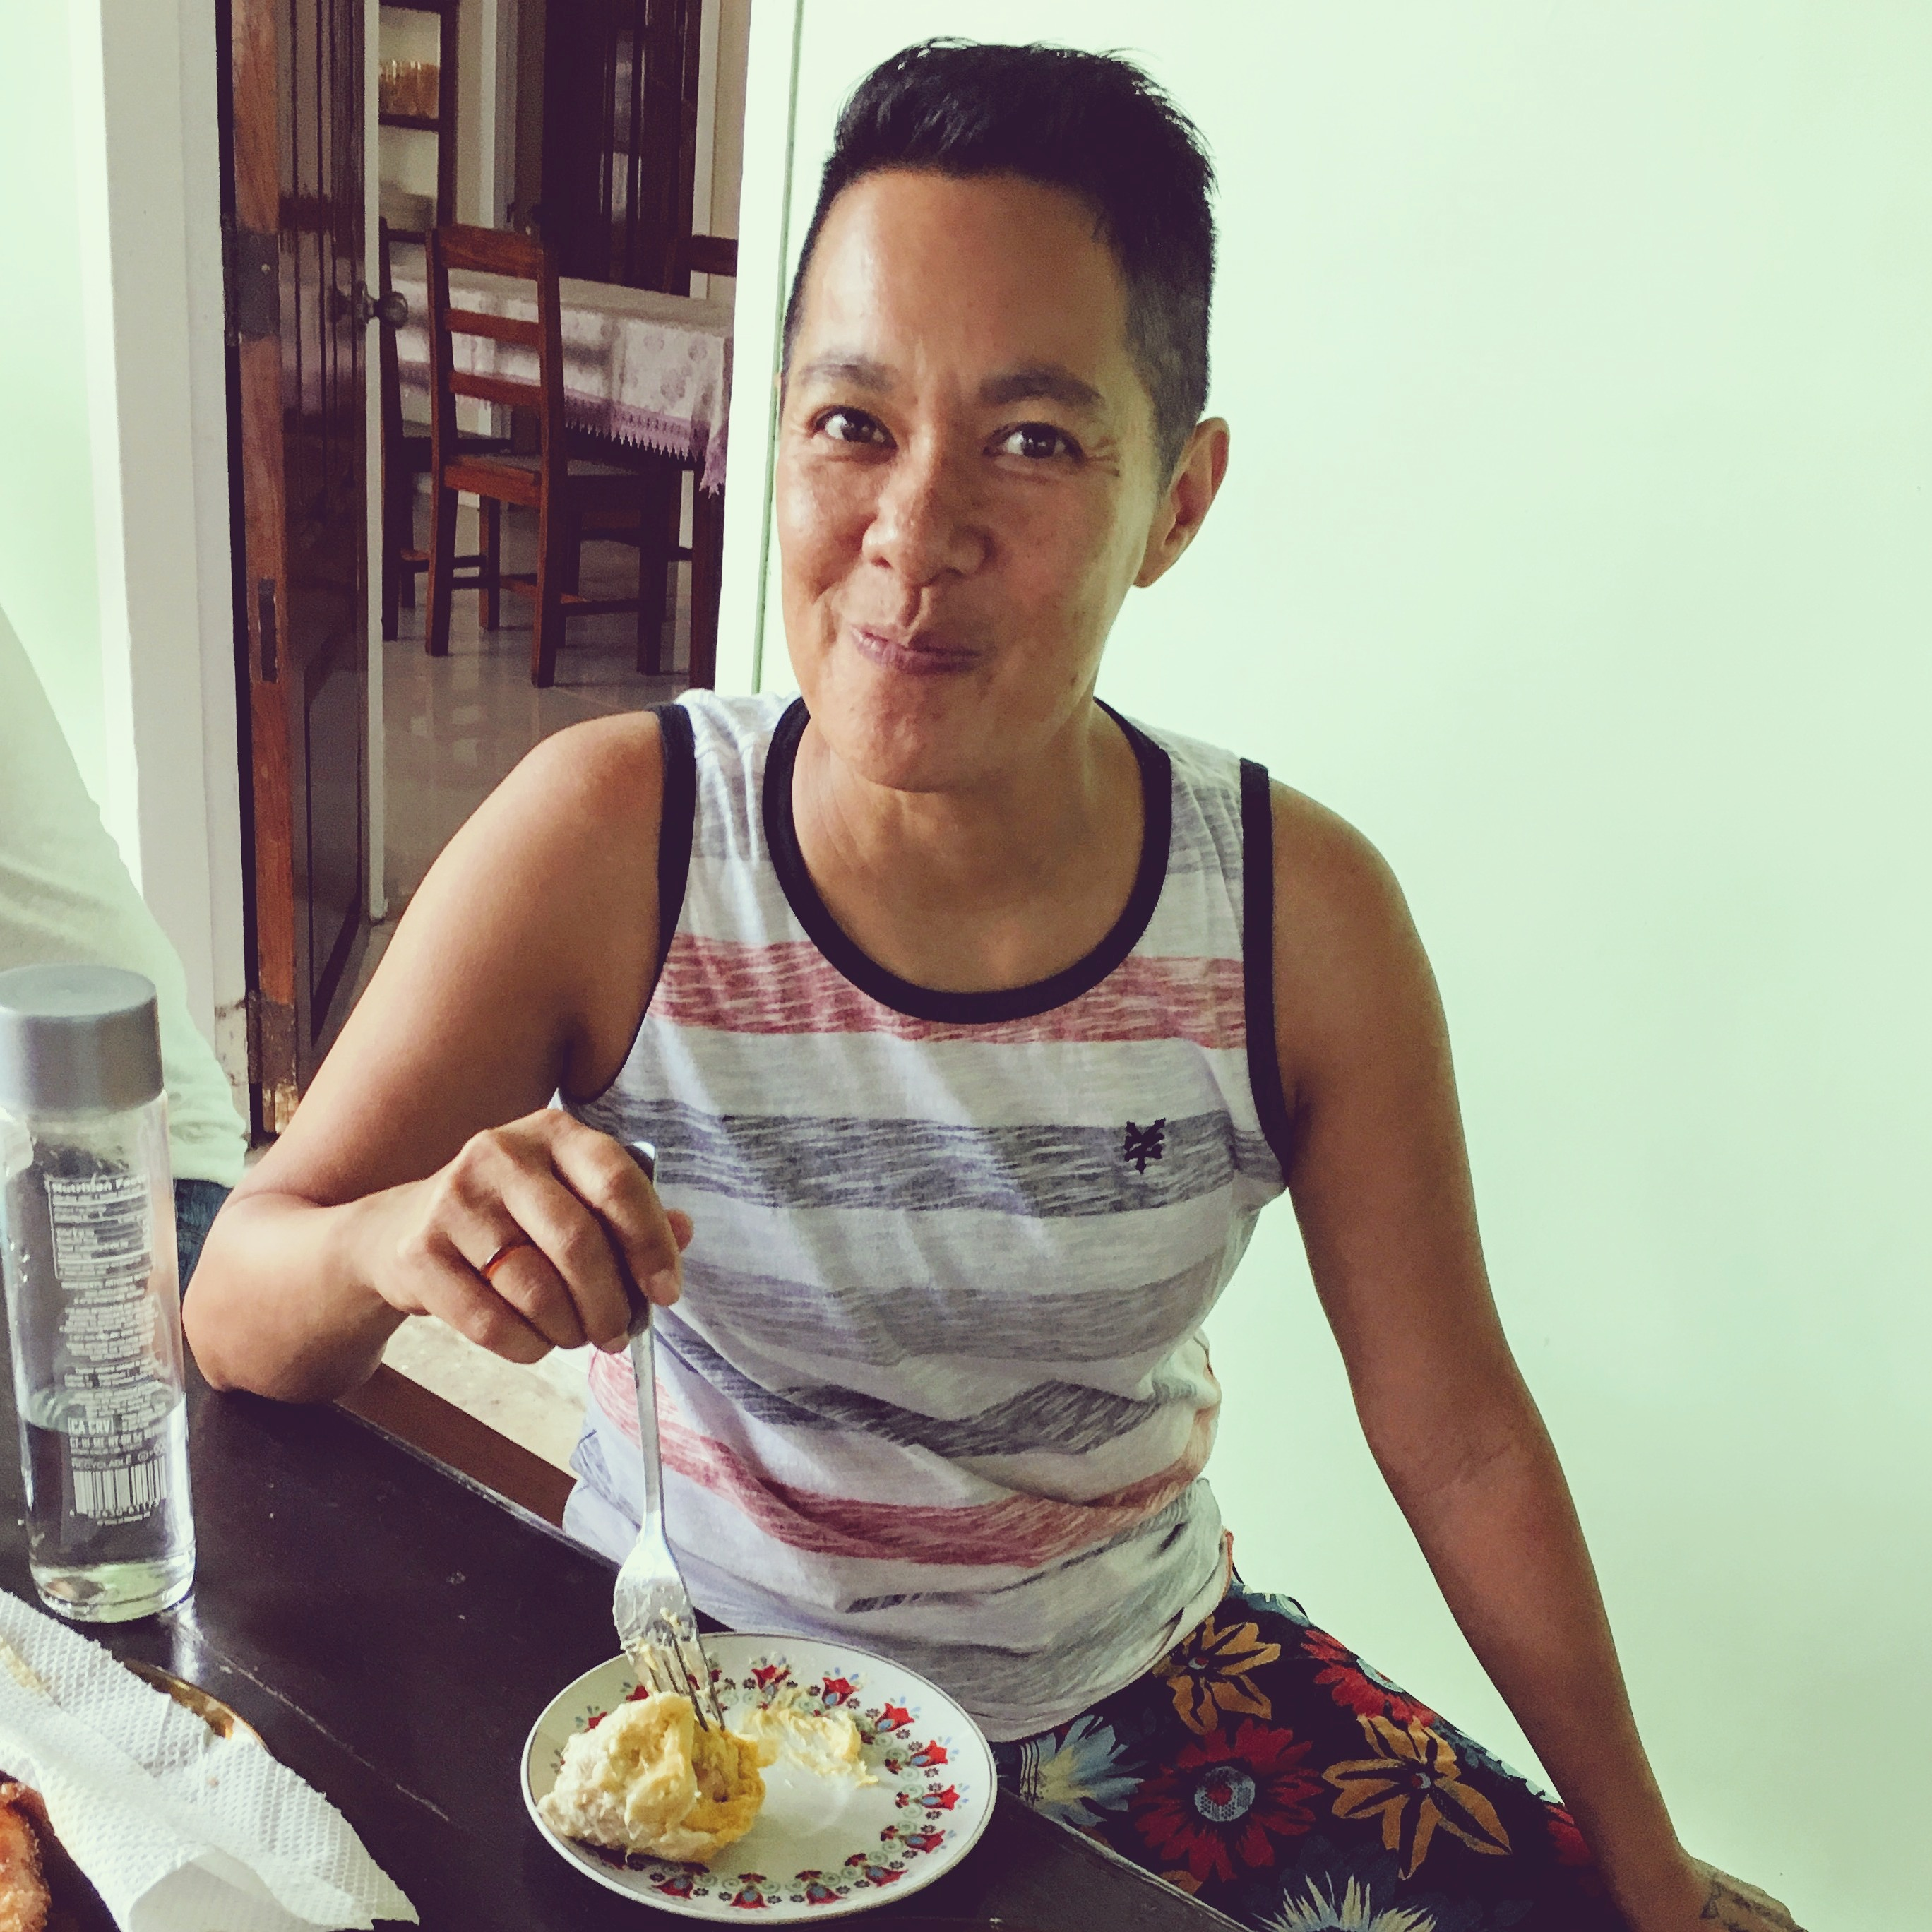 Dr. Chris eating durian